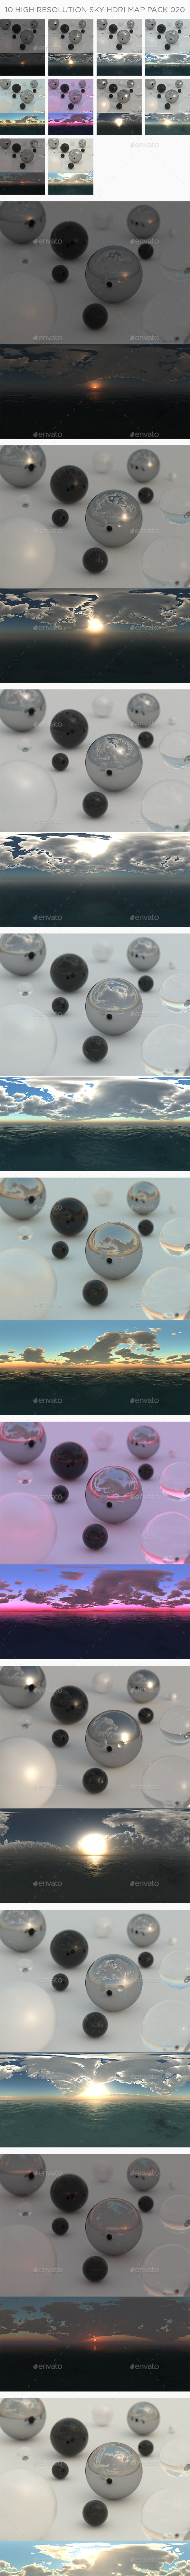 10 High Resolution Sky HDRi Maps Pack 020 - 3DOcean Item for Sale